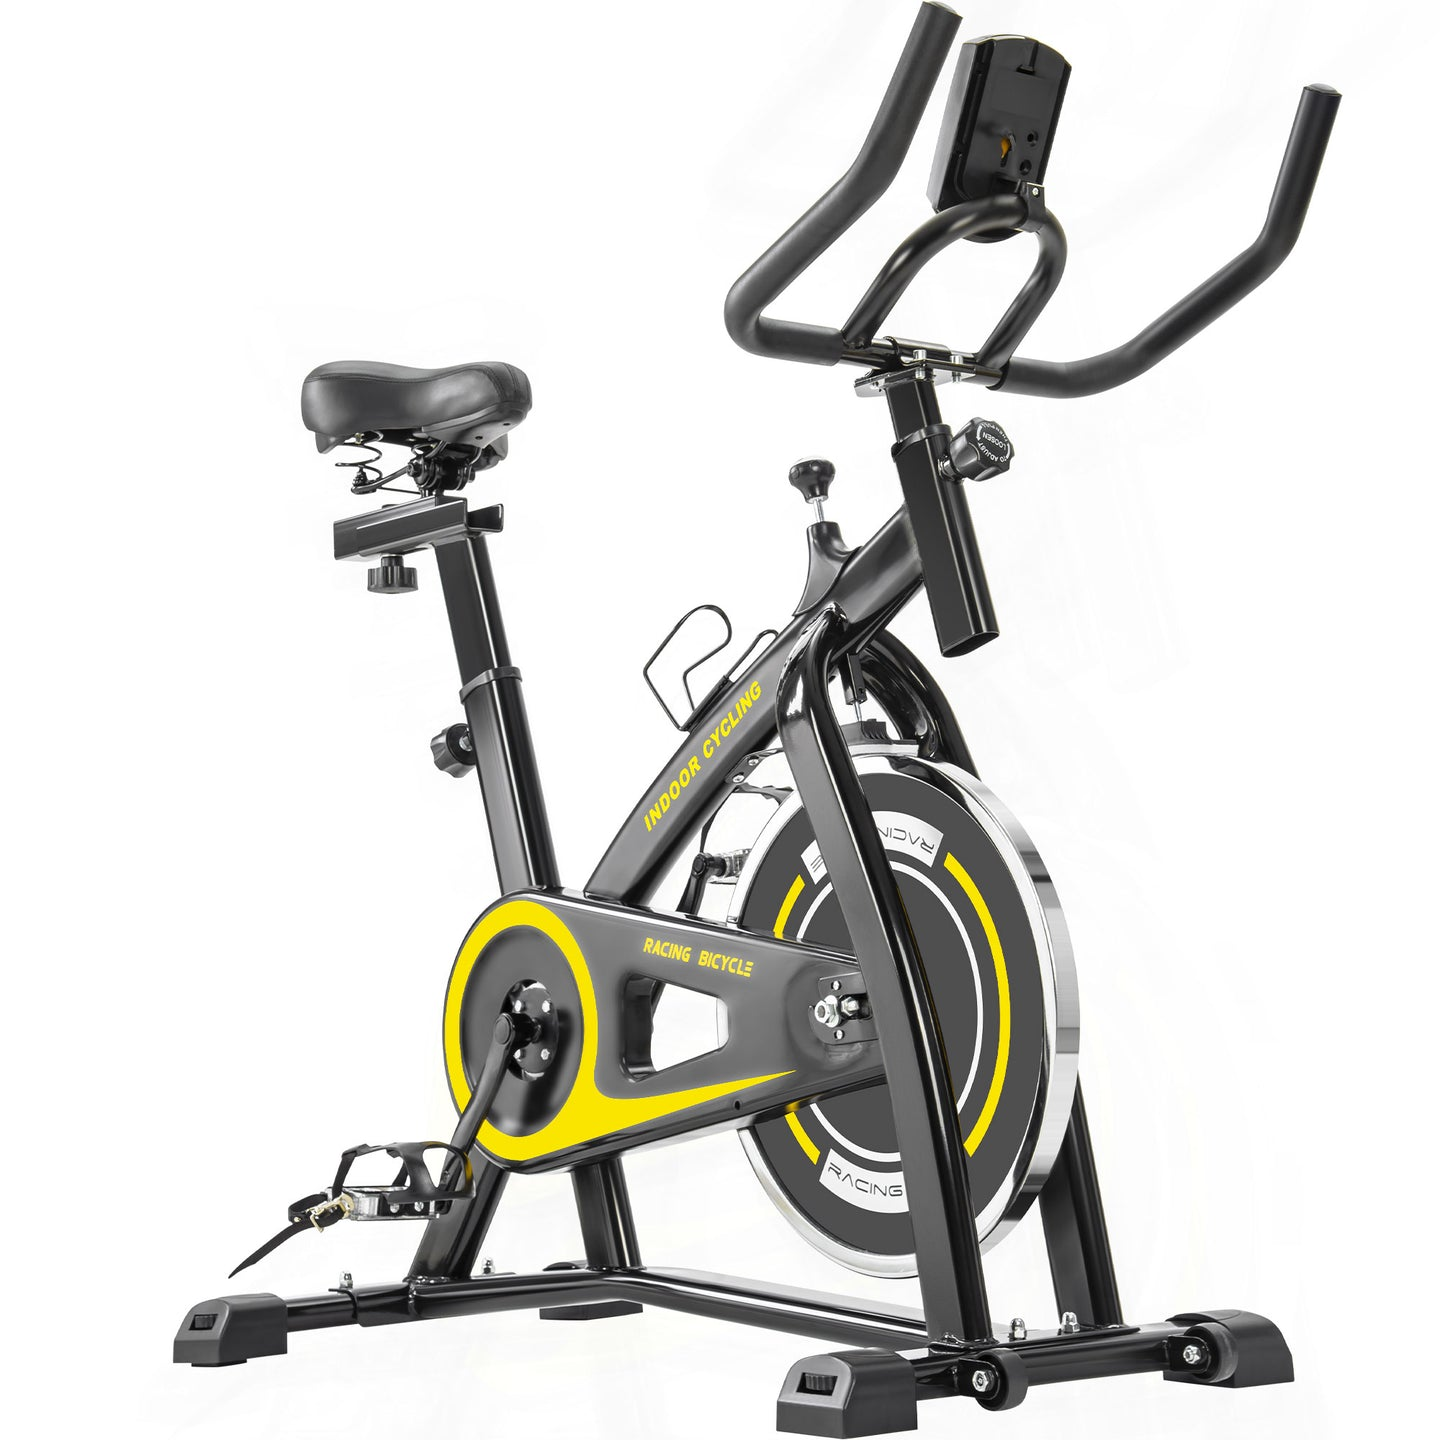 Indoor Cycling Bike Trainer with Comfortable Seat Cushion, Belt Drive System and LCD Monitor for Home Workout by MRS Yellow version